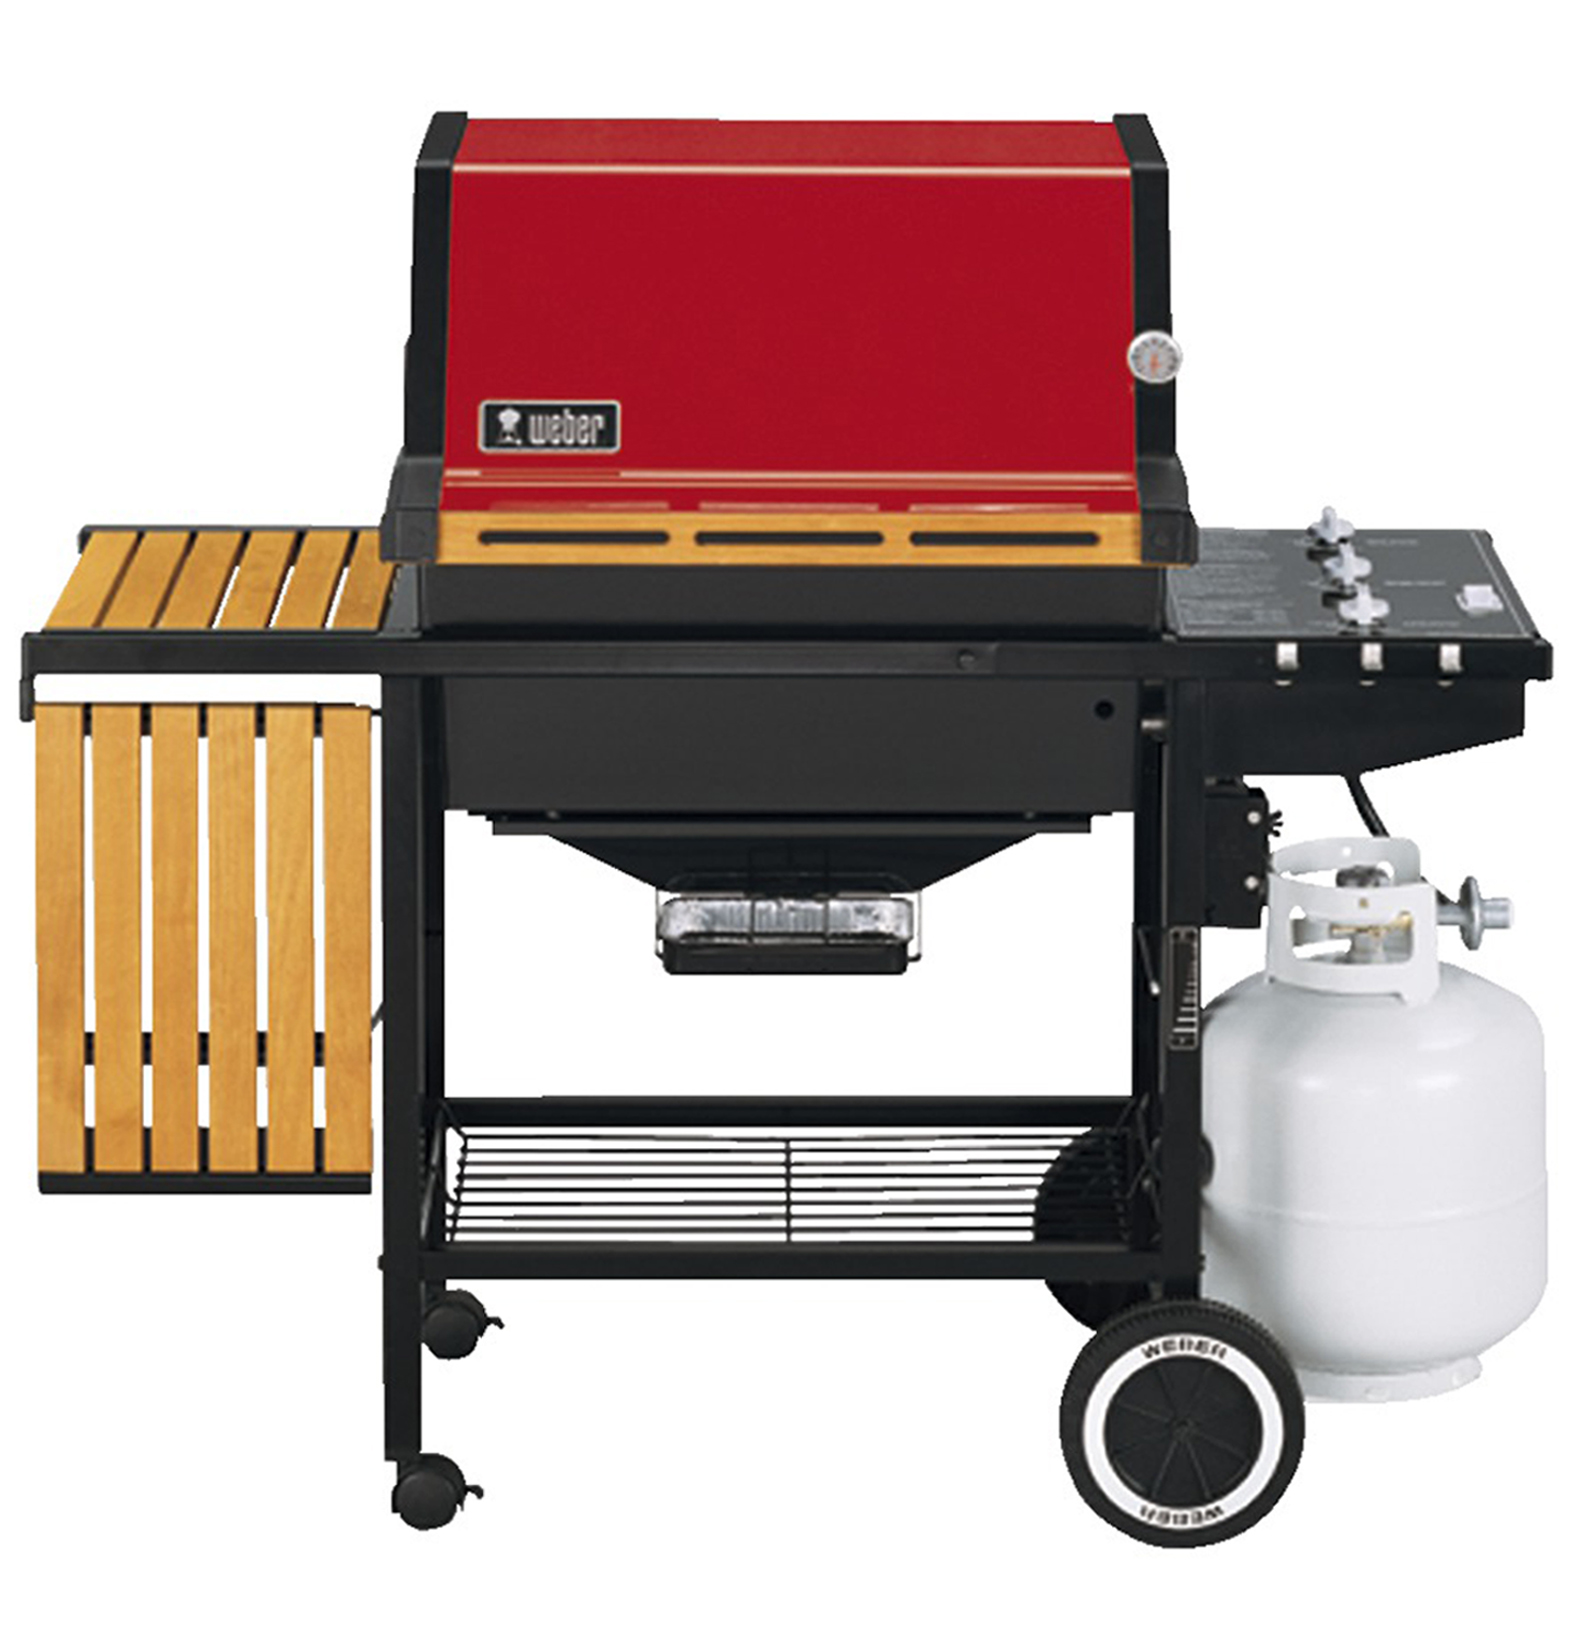 Genesis gas barbecue from 1985 (Weber/PA)